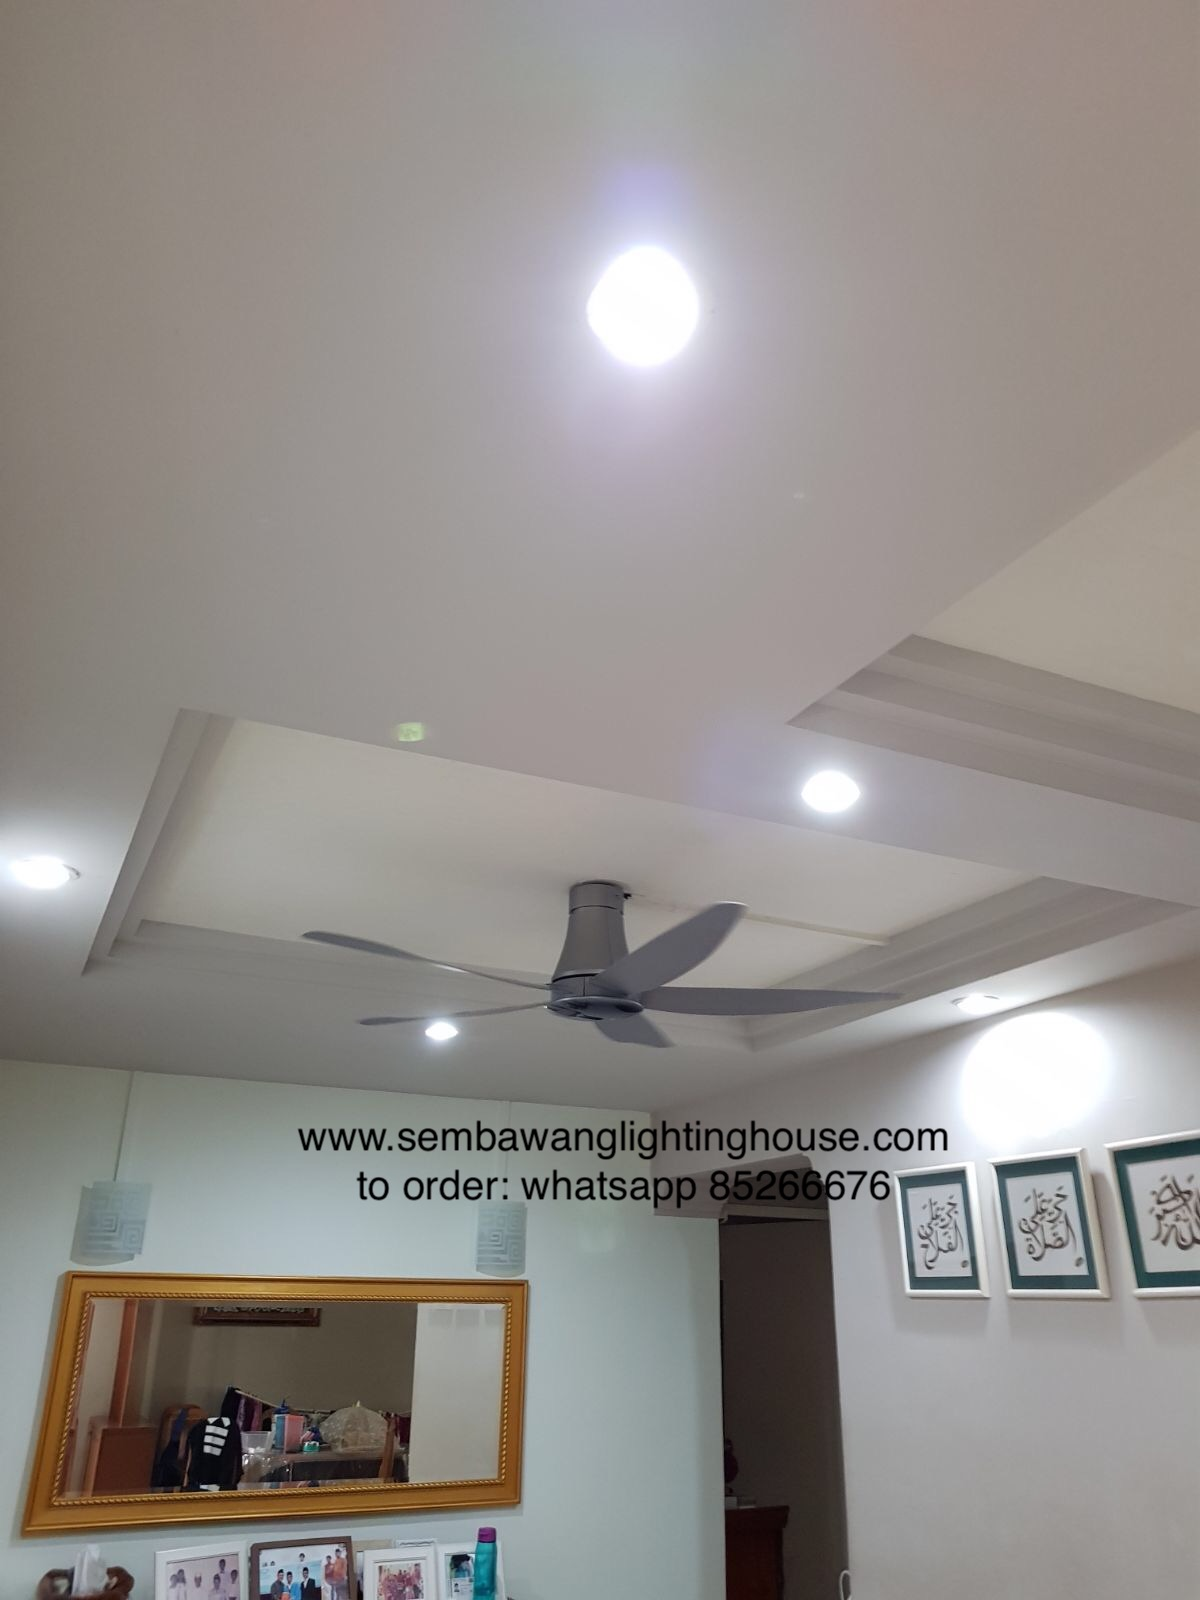 KDK T60AW ceiling fan in living room | Sembawang Lighting House